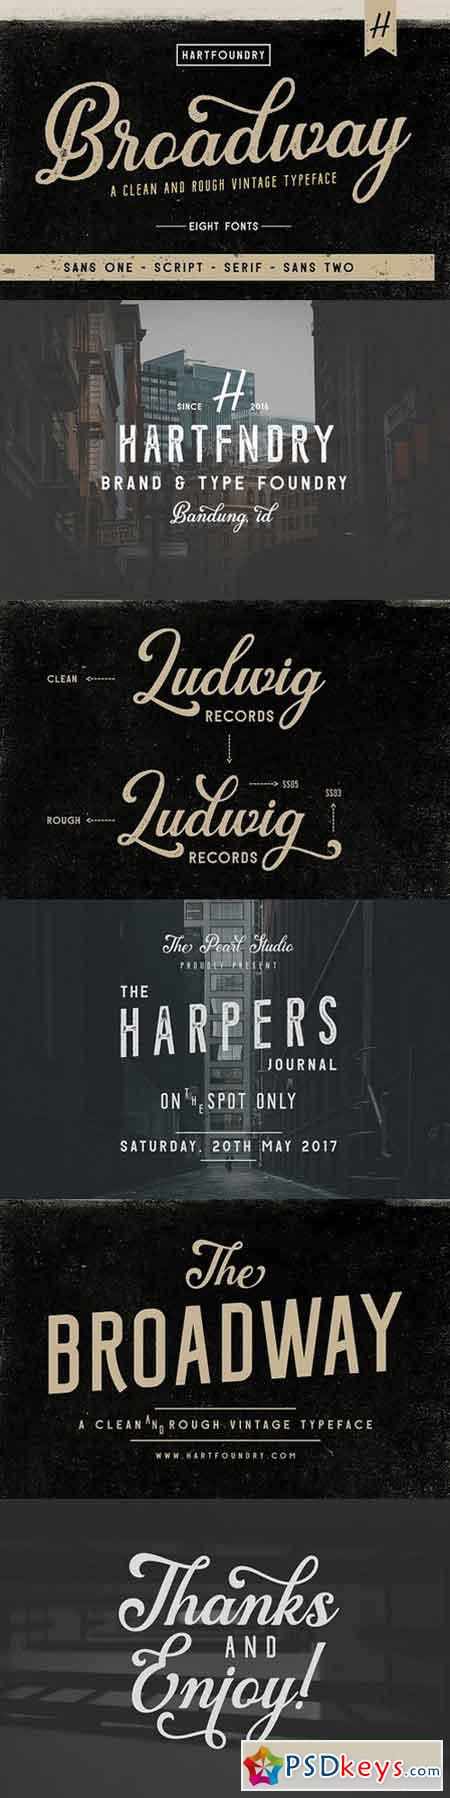 Download Broadway Font Pack 1518822 » Free Download Photoshop ...